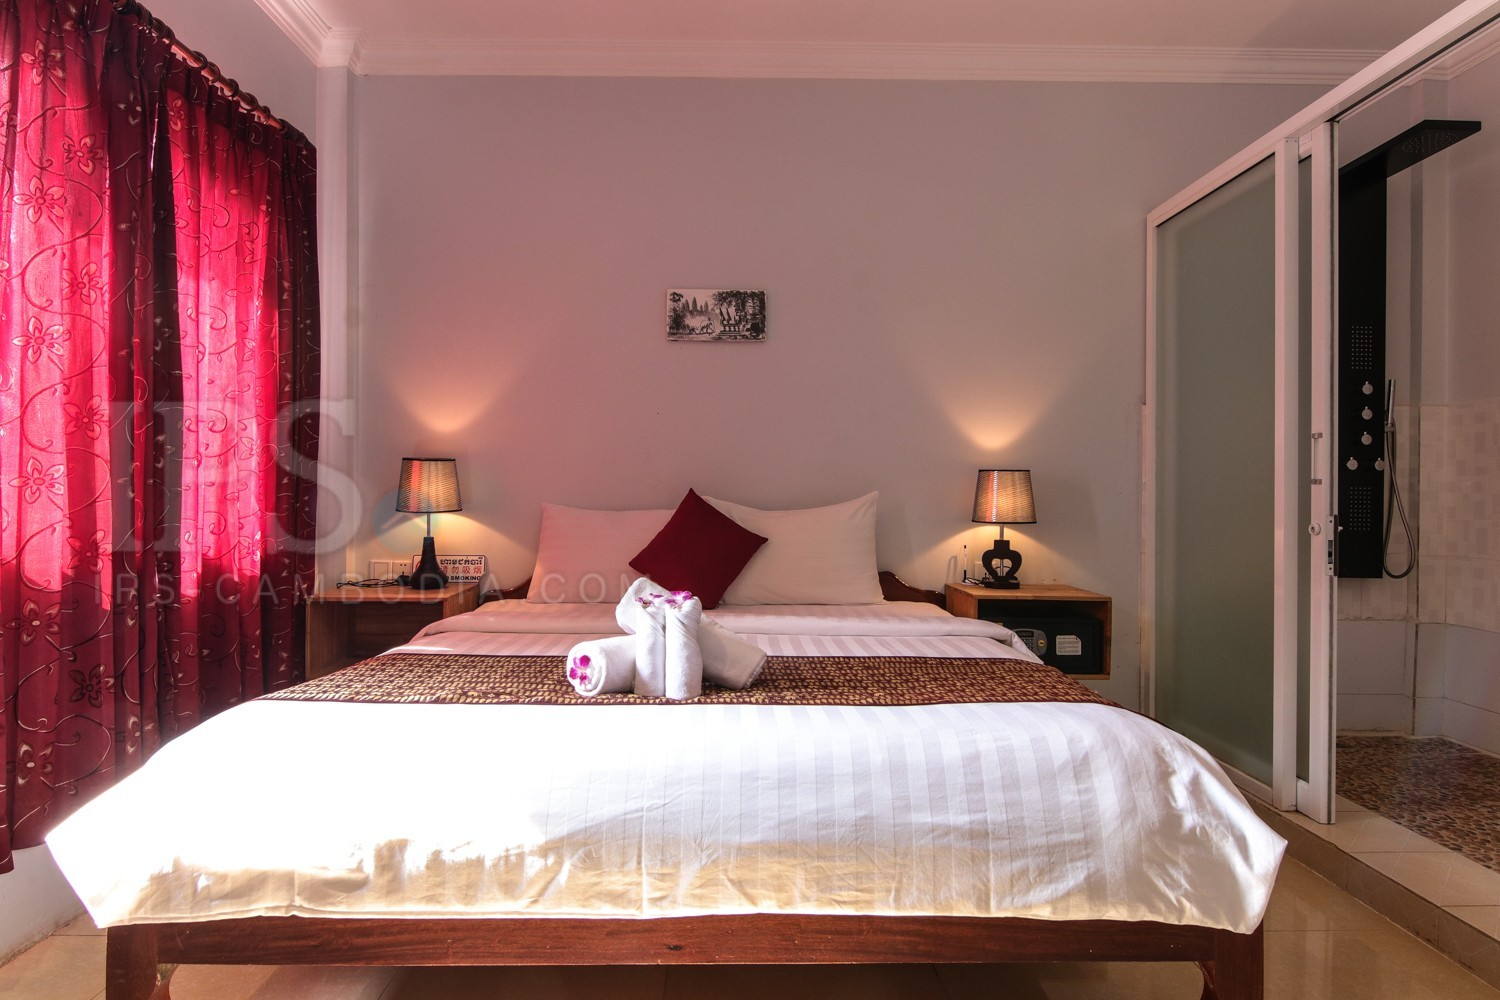 6 Room Guesthouse Business For Sale - Old Market / Pub Street, Siem Reap